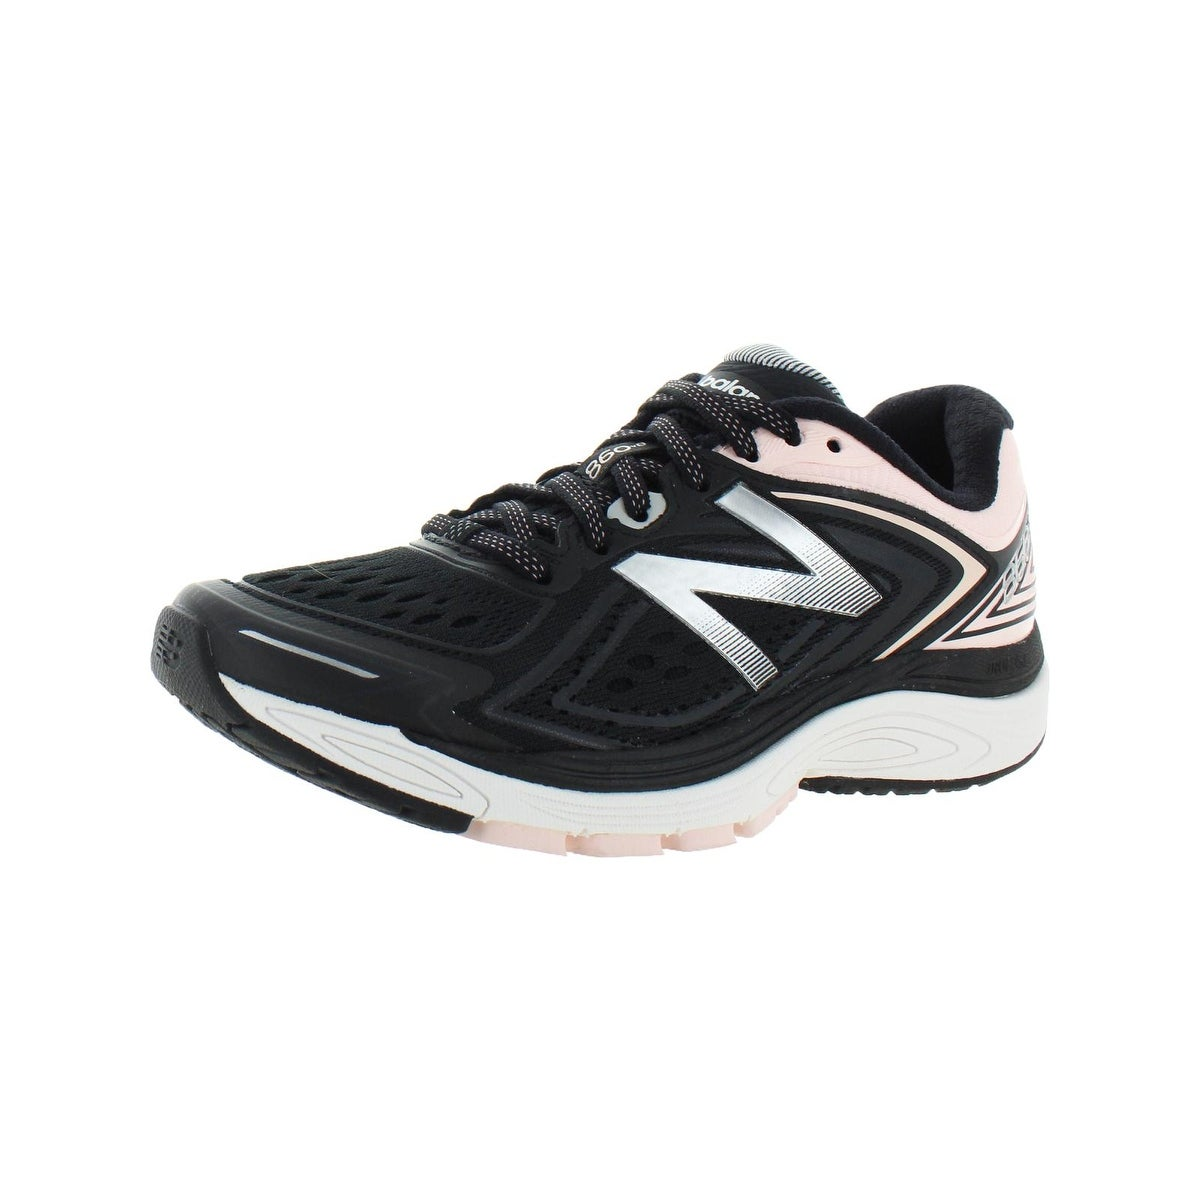 pecora Permettersi congestione  Shop New Balance Womens 860V8 Running Shoes Lightweight Low Top Size - 5  Medium (B,M) - Overstock - 29876700